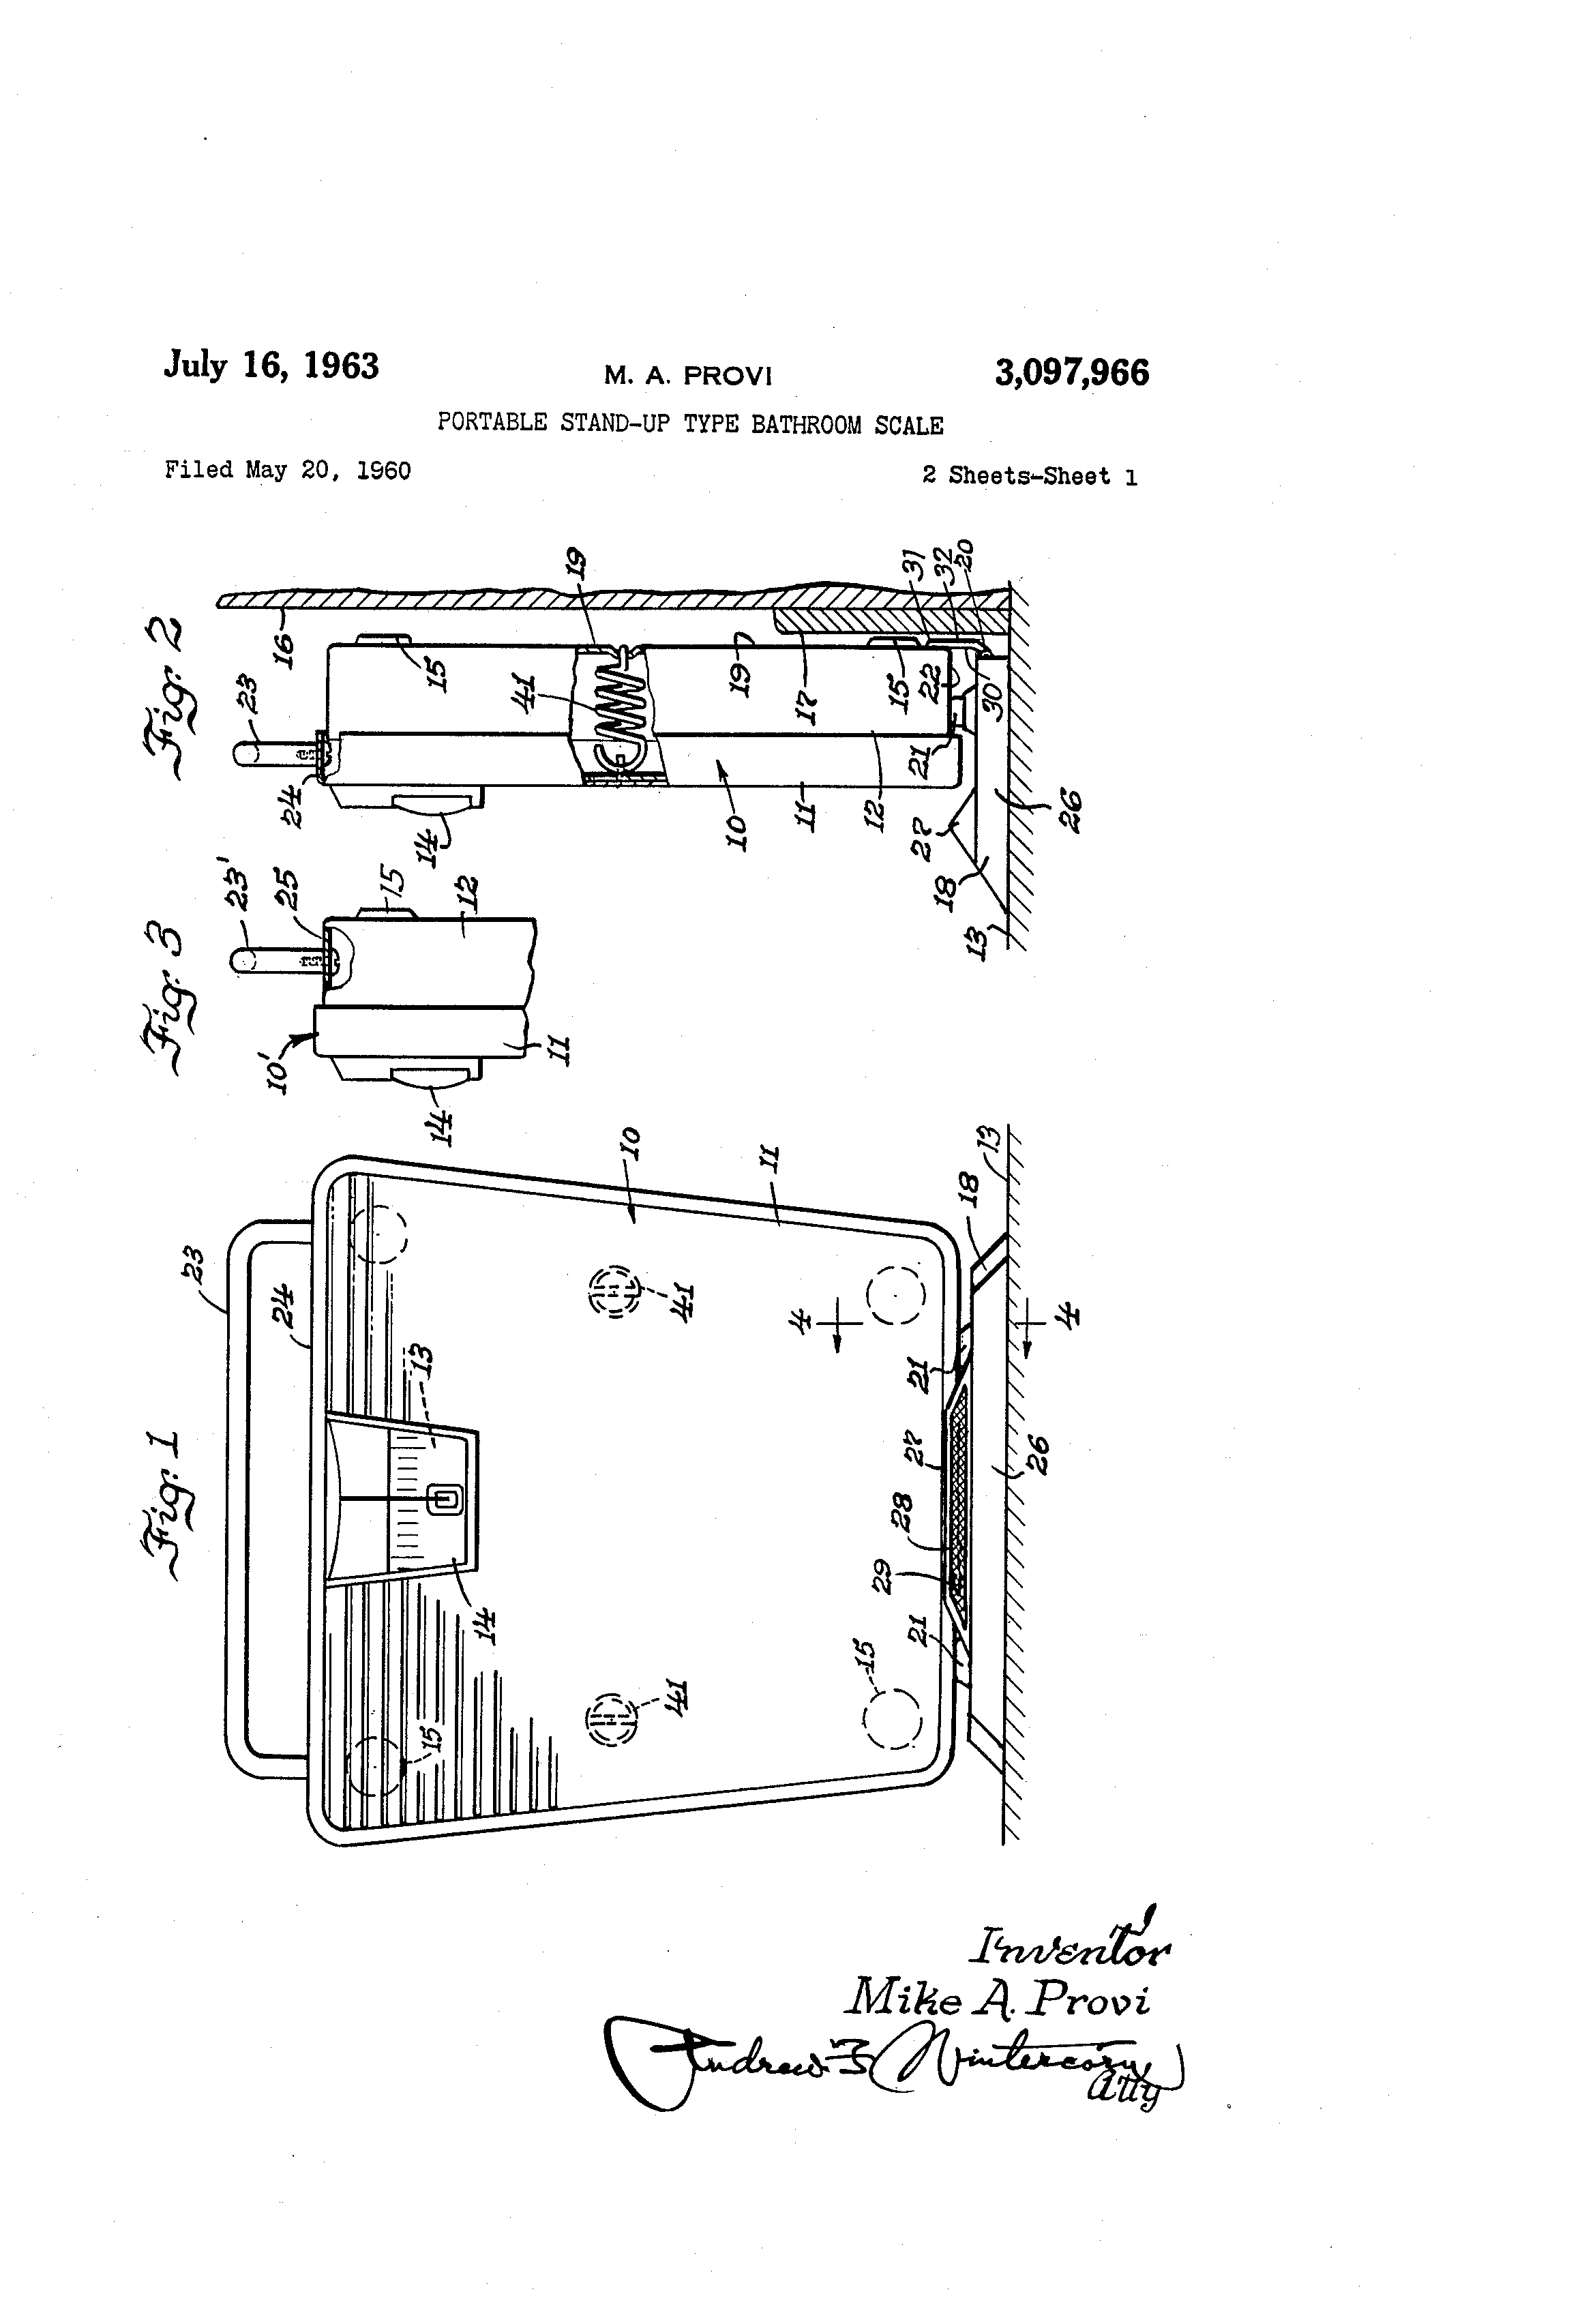 Stand Up Bathroom Scales - Patent drawing